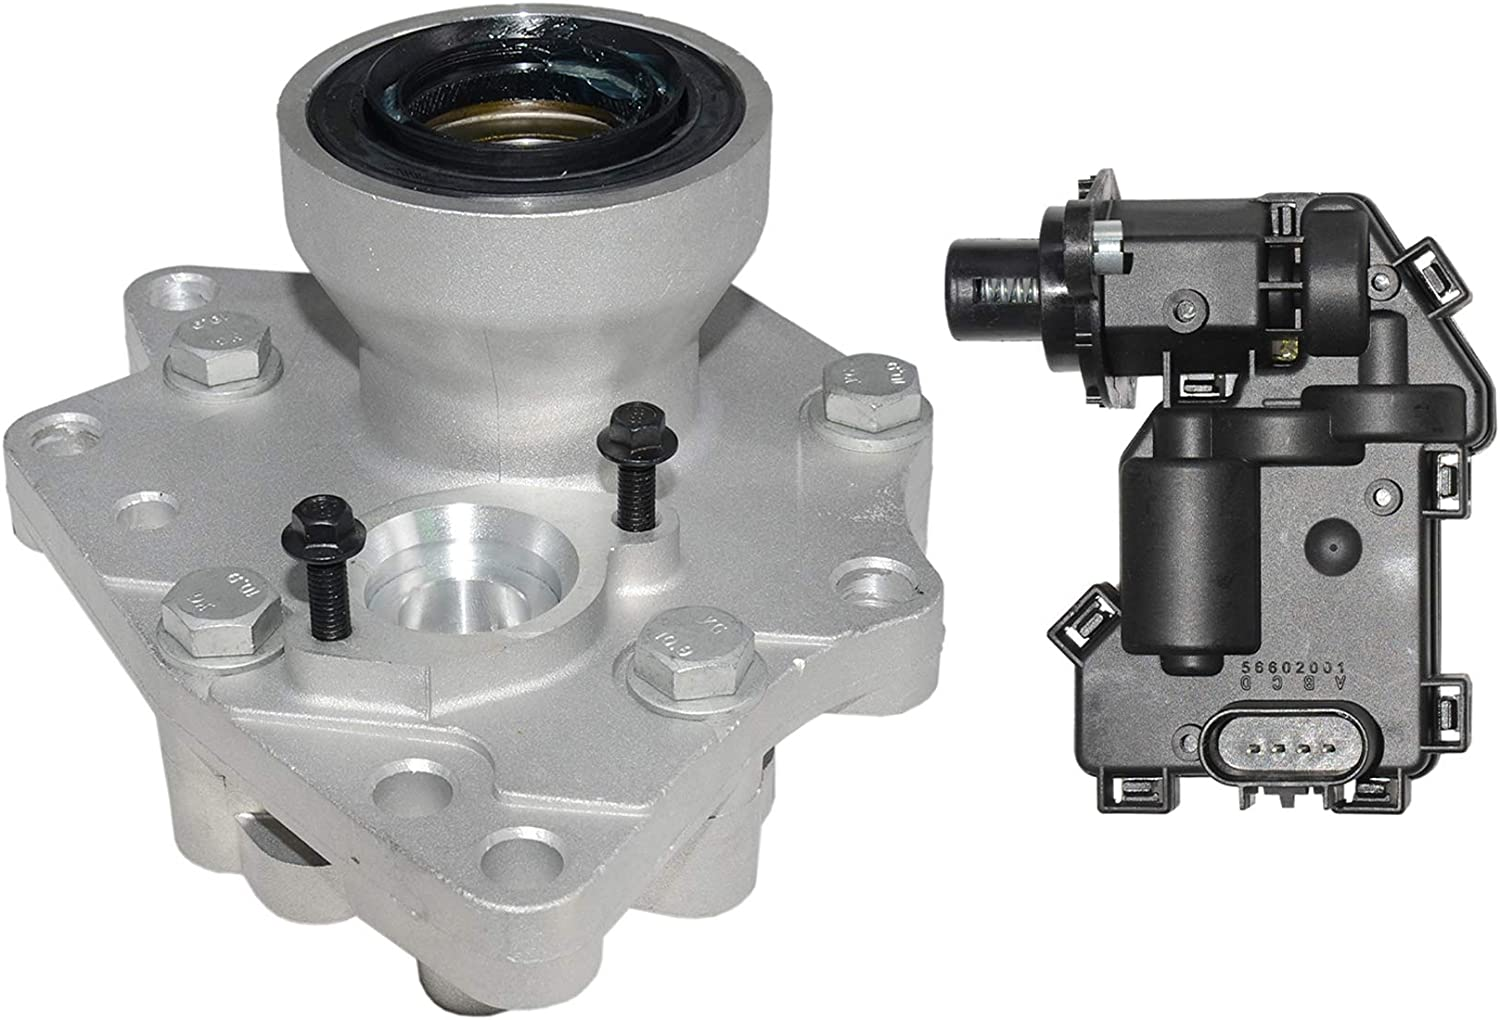 600-115 100% quality warranty! 4WD Front Differential Axle Disconnect Assy shipfree Rep Actuator